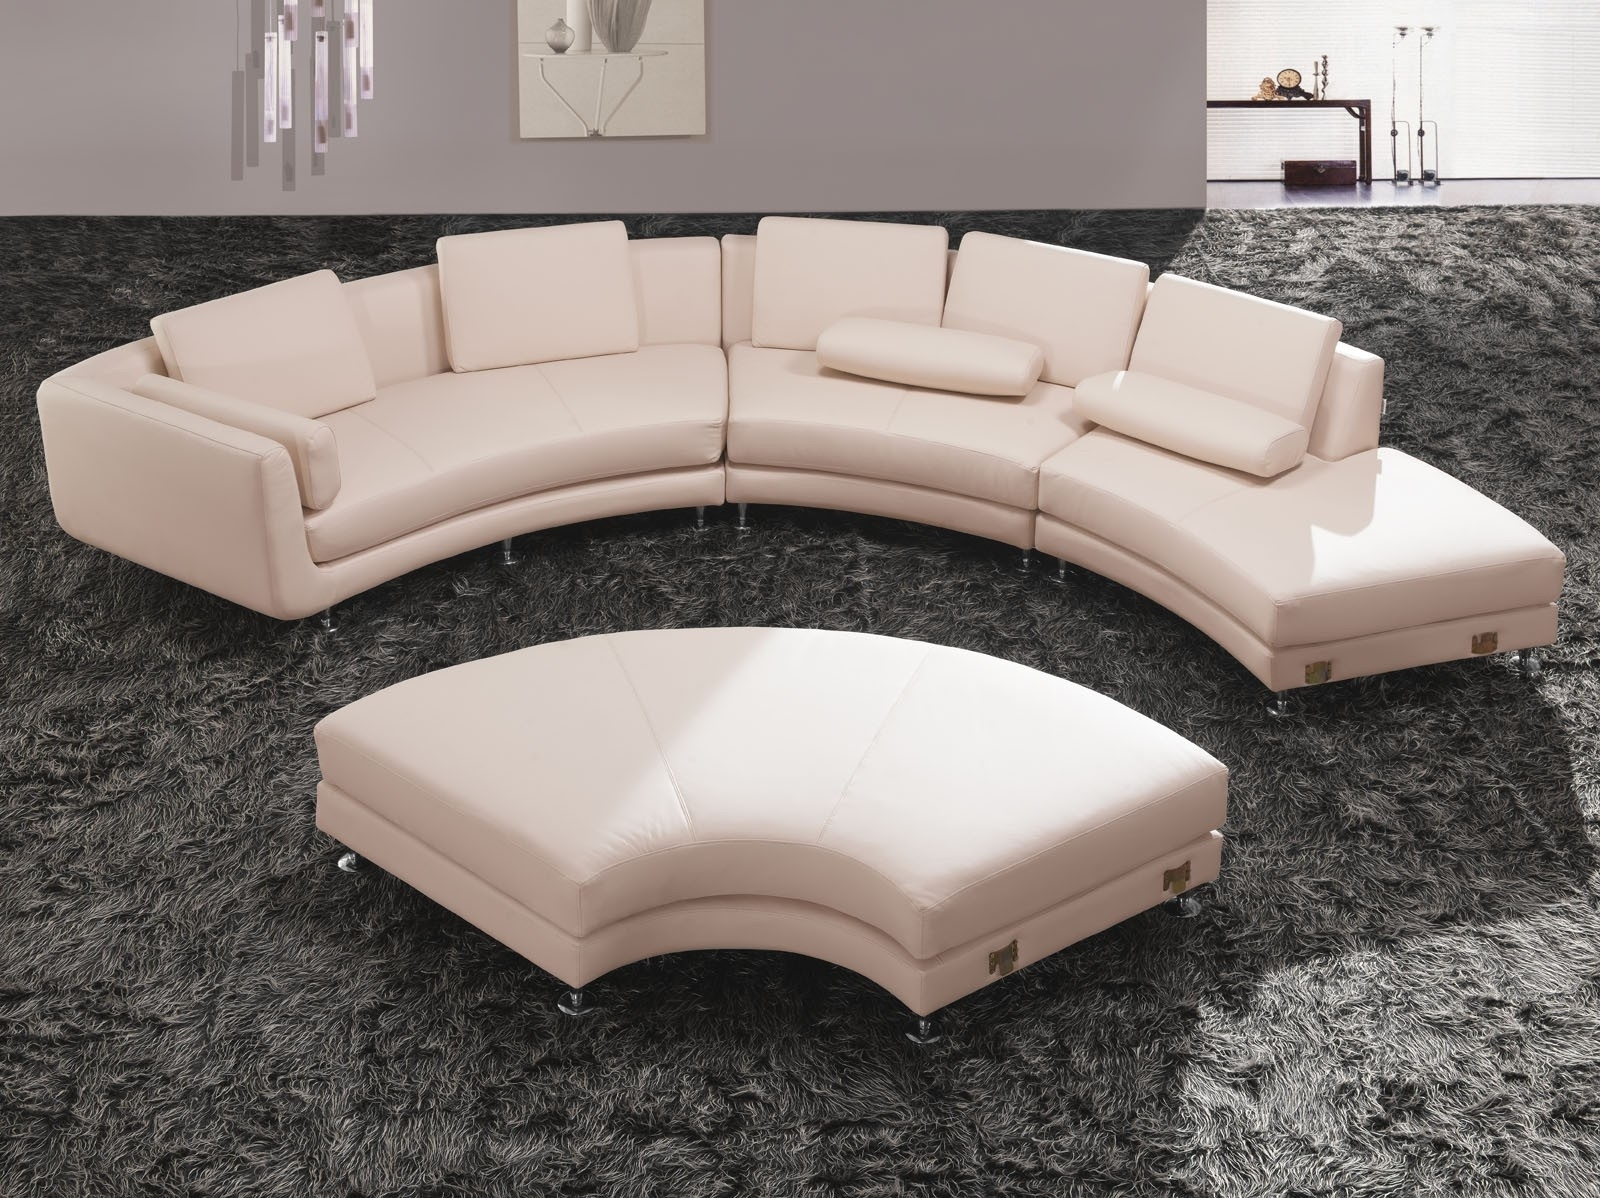 Sofa : Glamorous Round Sectional Sofa Bed Curved Leather Tufted Regarding Circular Sectional Sofas (Image 9 of 10)